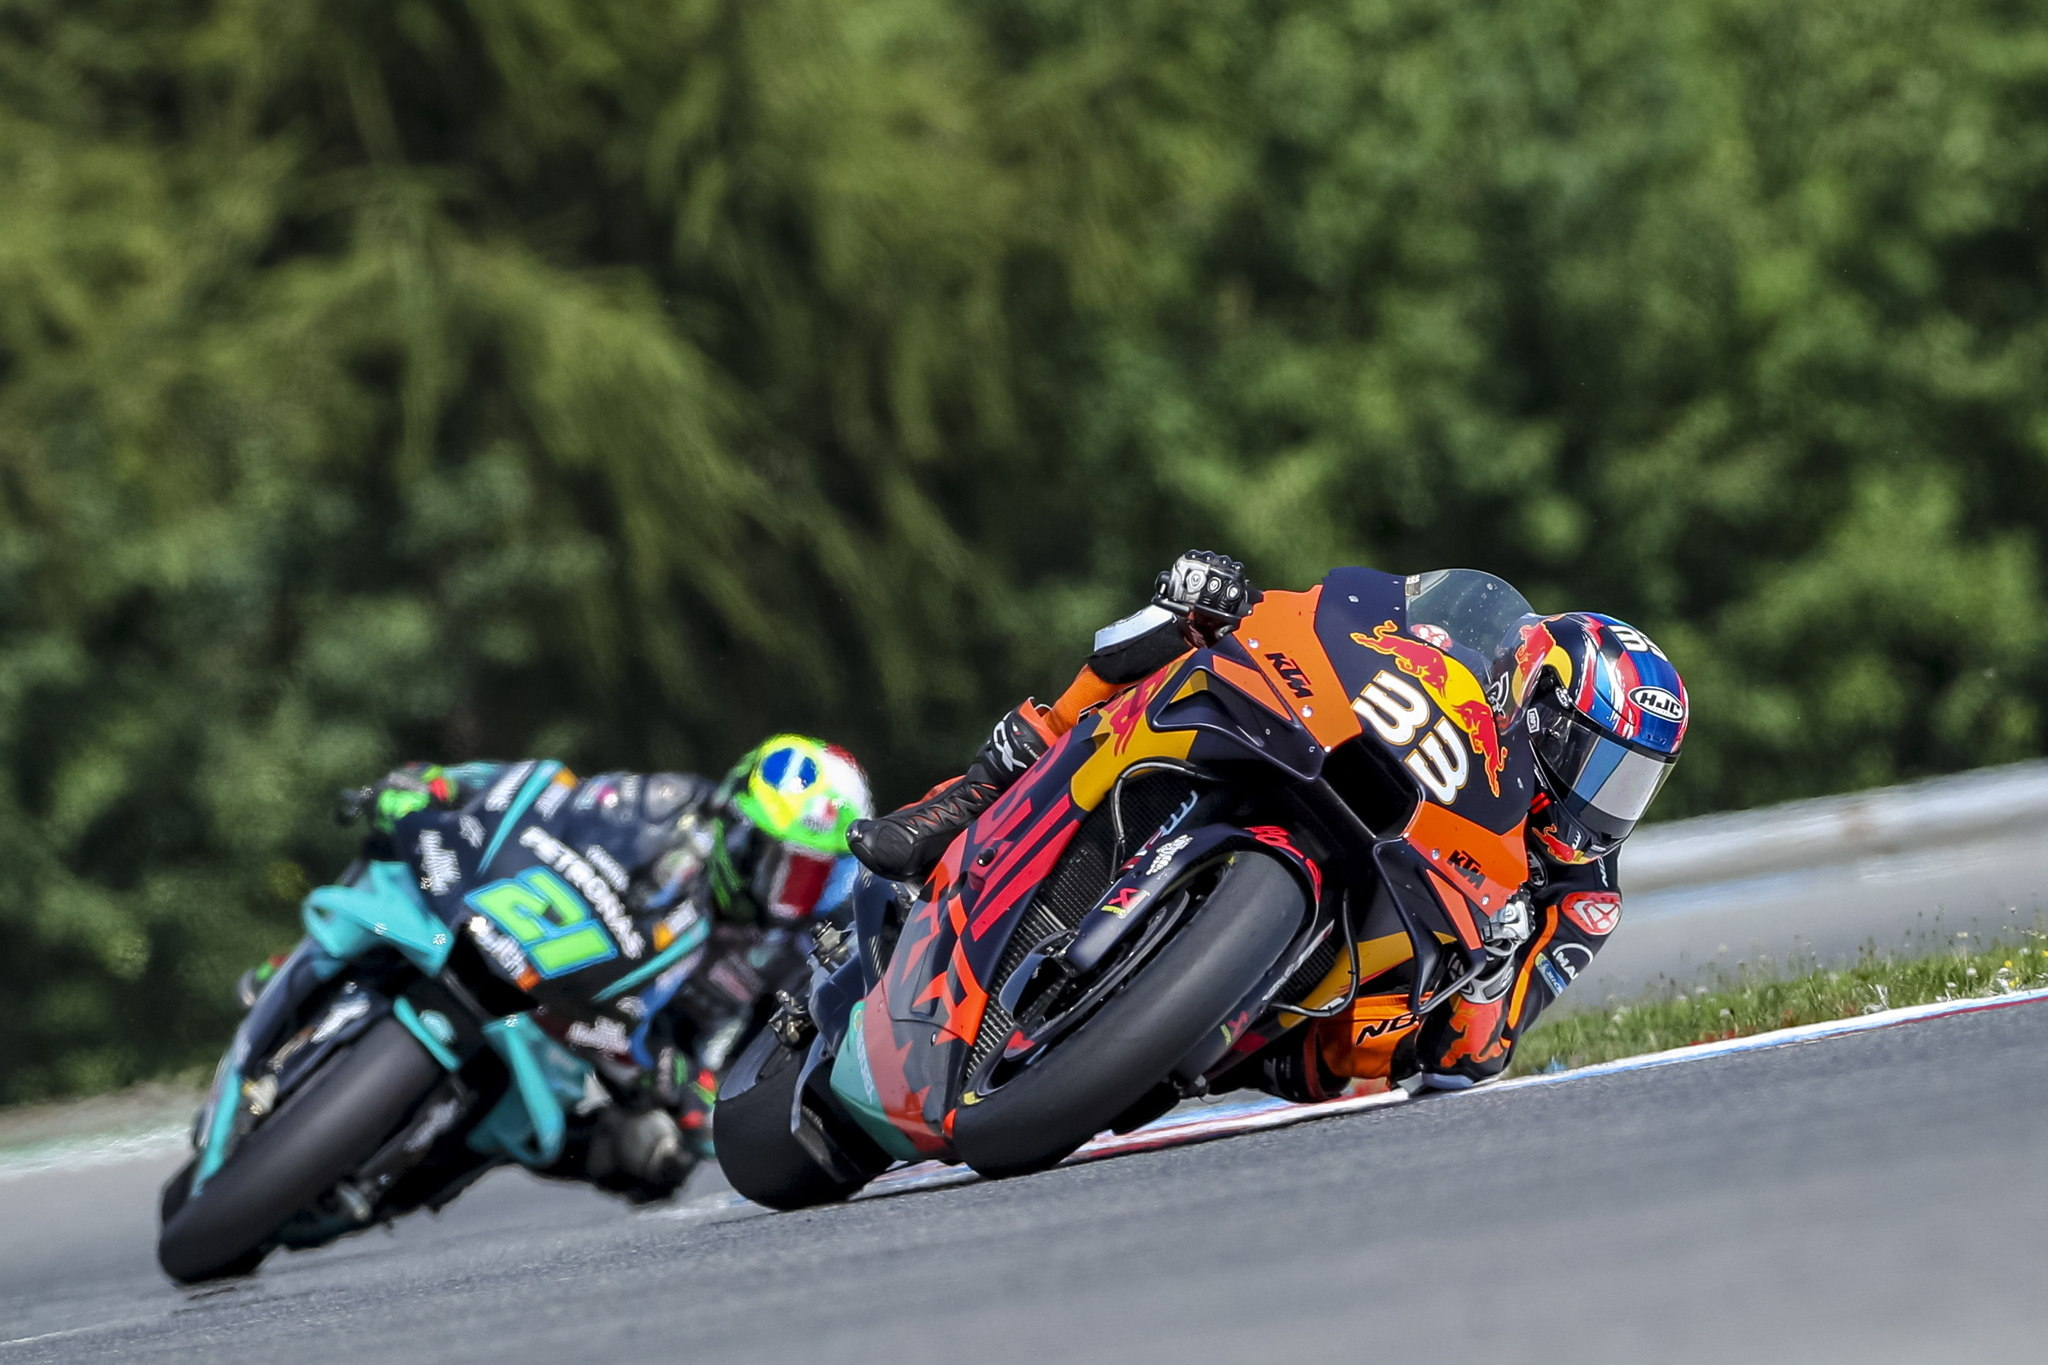 Brno (Czech Republic), 09/08/2020.- South African rider Brad lt;HIT gt;Binder lt;/HIT gt; (R) of Red Bull KTM Factory Racing team in action during the MotoGP race of the Motorcycling Grand Prix of the Czech Republic at Masaryk circuit in Brno, Czech Republic, 09 August 2020. (Motociclismo, Ciclismo, República Checa, Sudáfrica) EFE/EPA/MARTIN DIVISEK